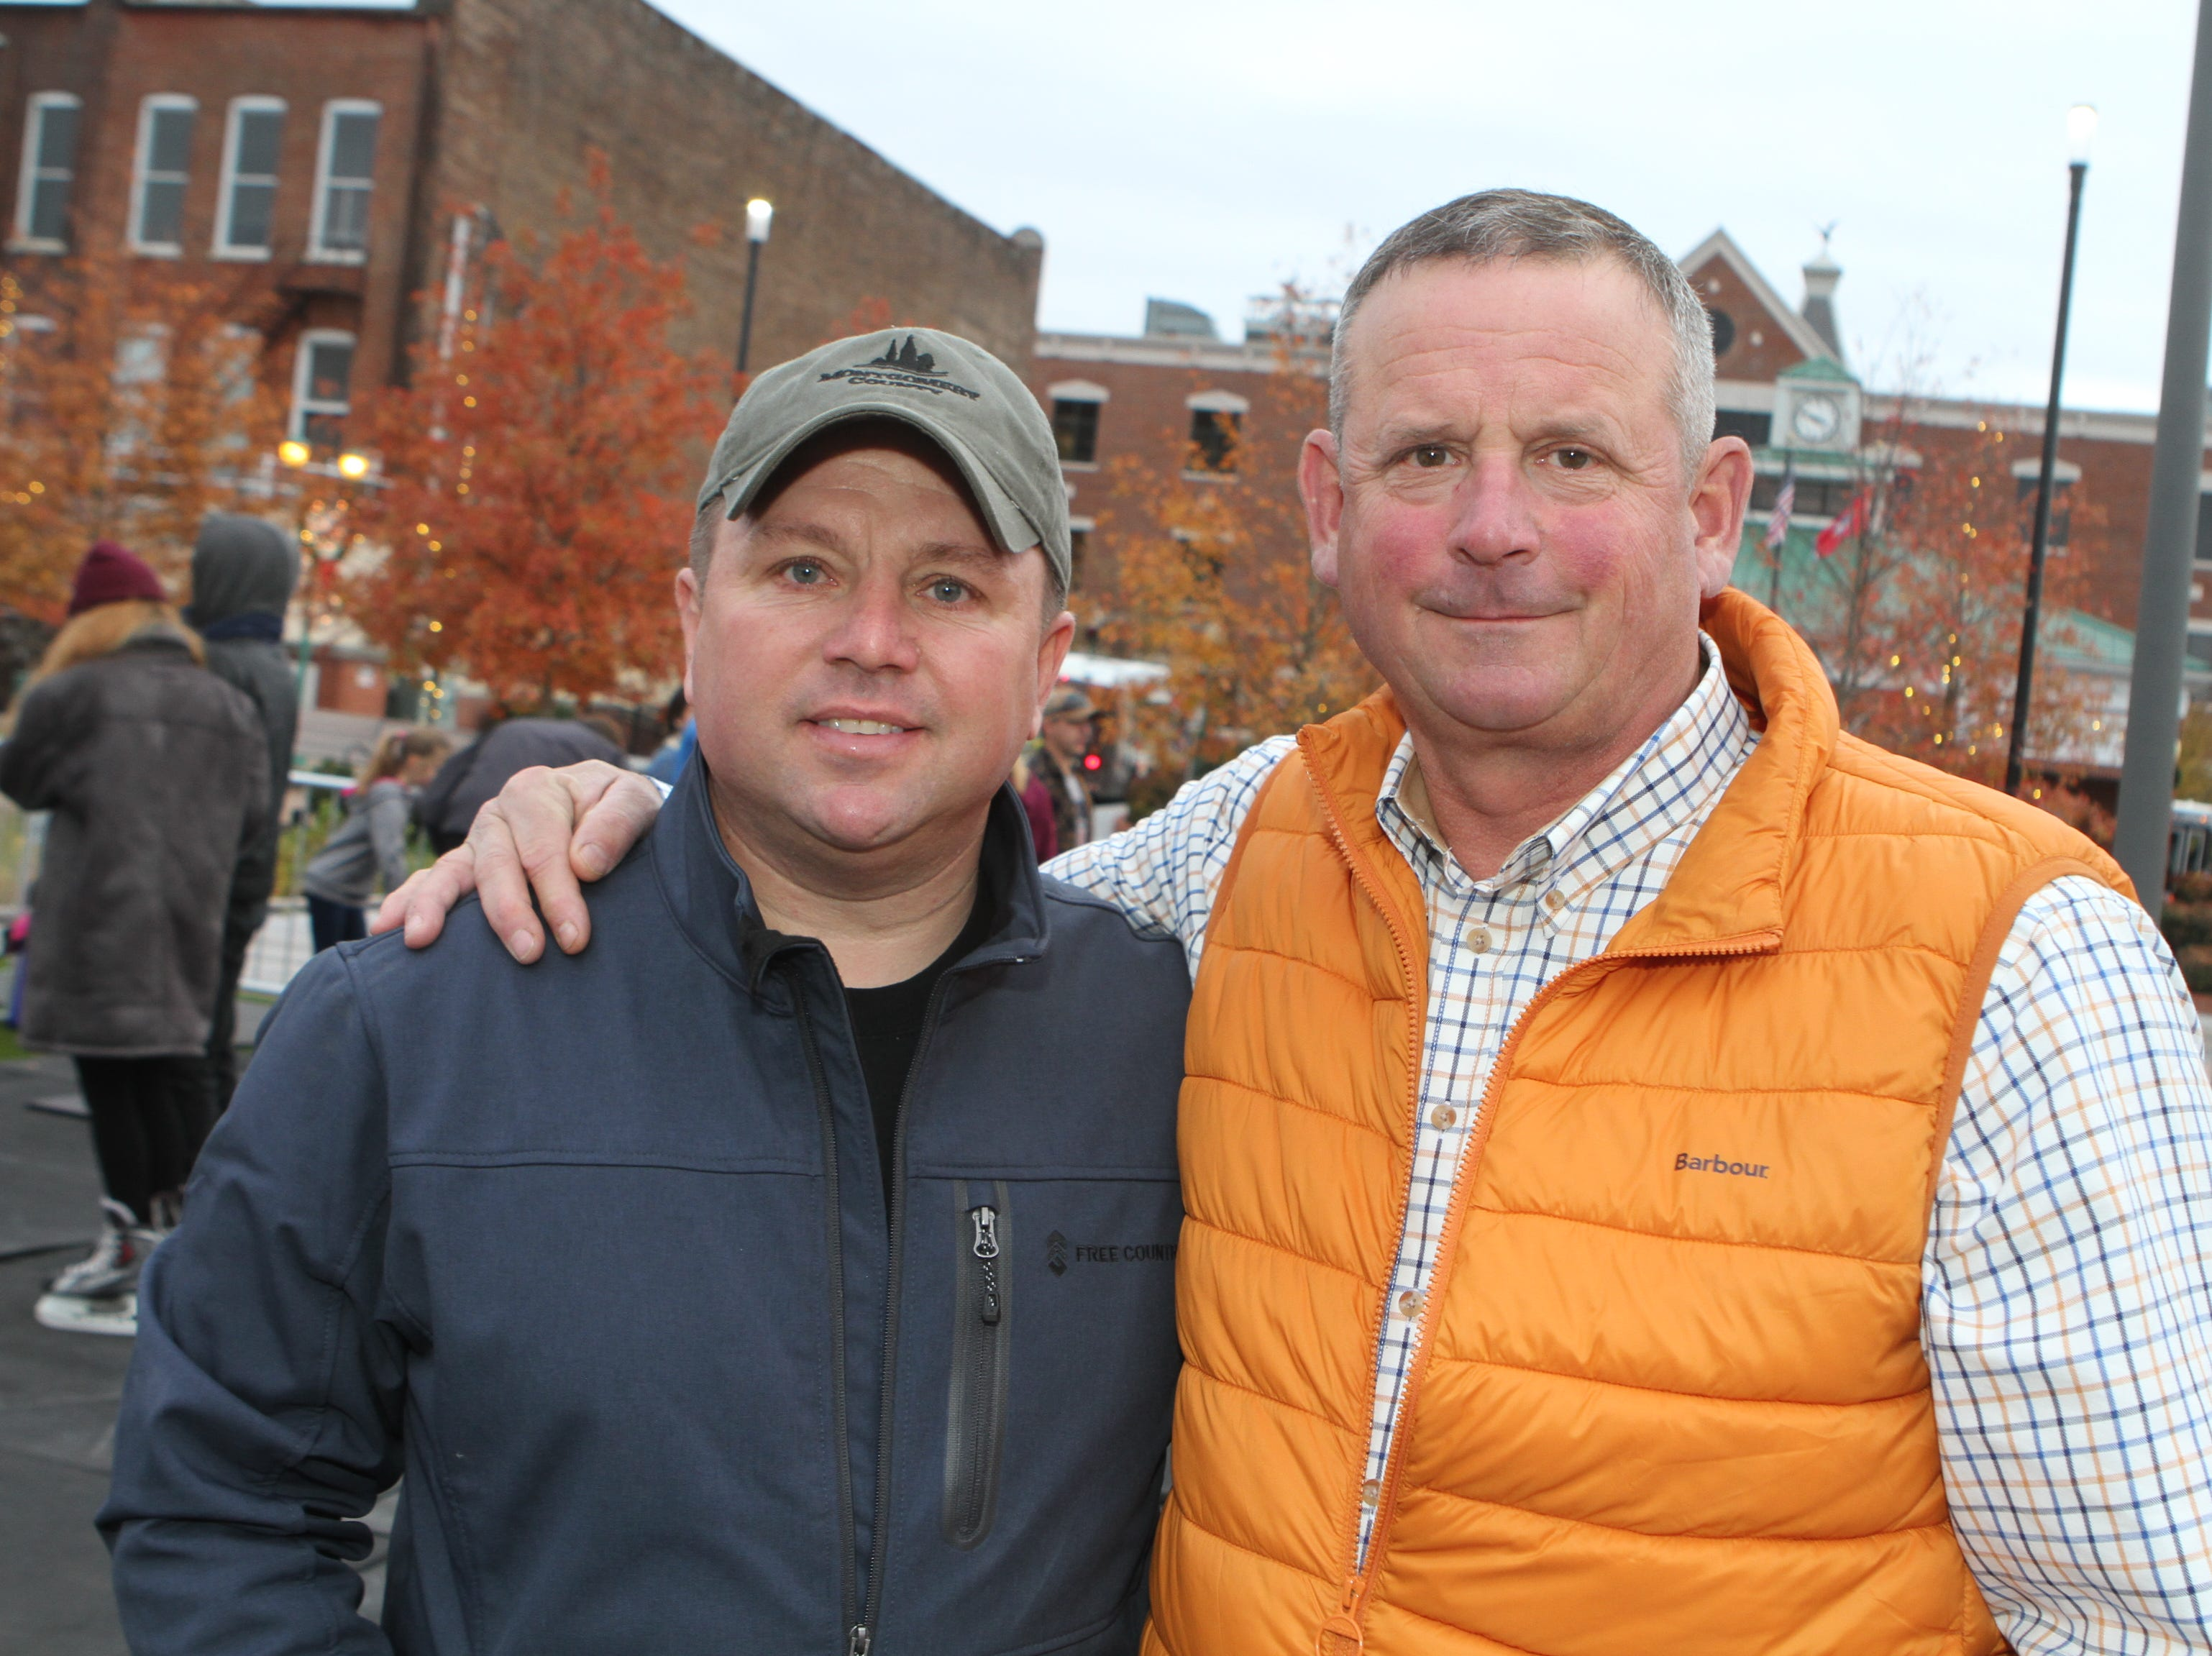 Norman Quirion and Montgomery County Mayor Jim Durrett at the Downtown Commons Winter Ice Rink opening on Friday, Nov. 23, 2018.